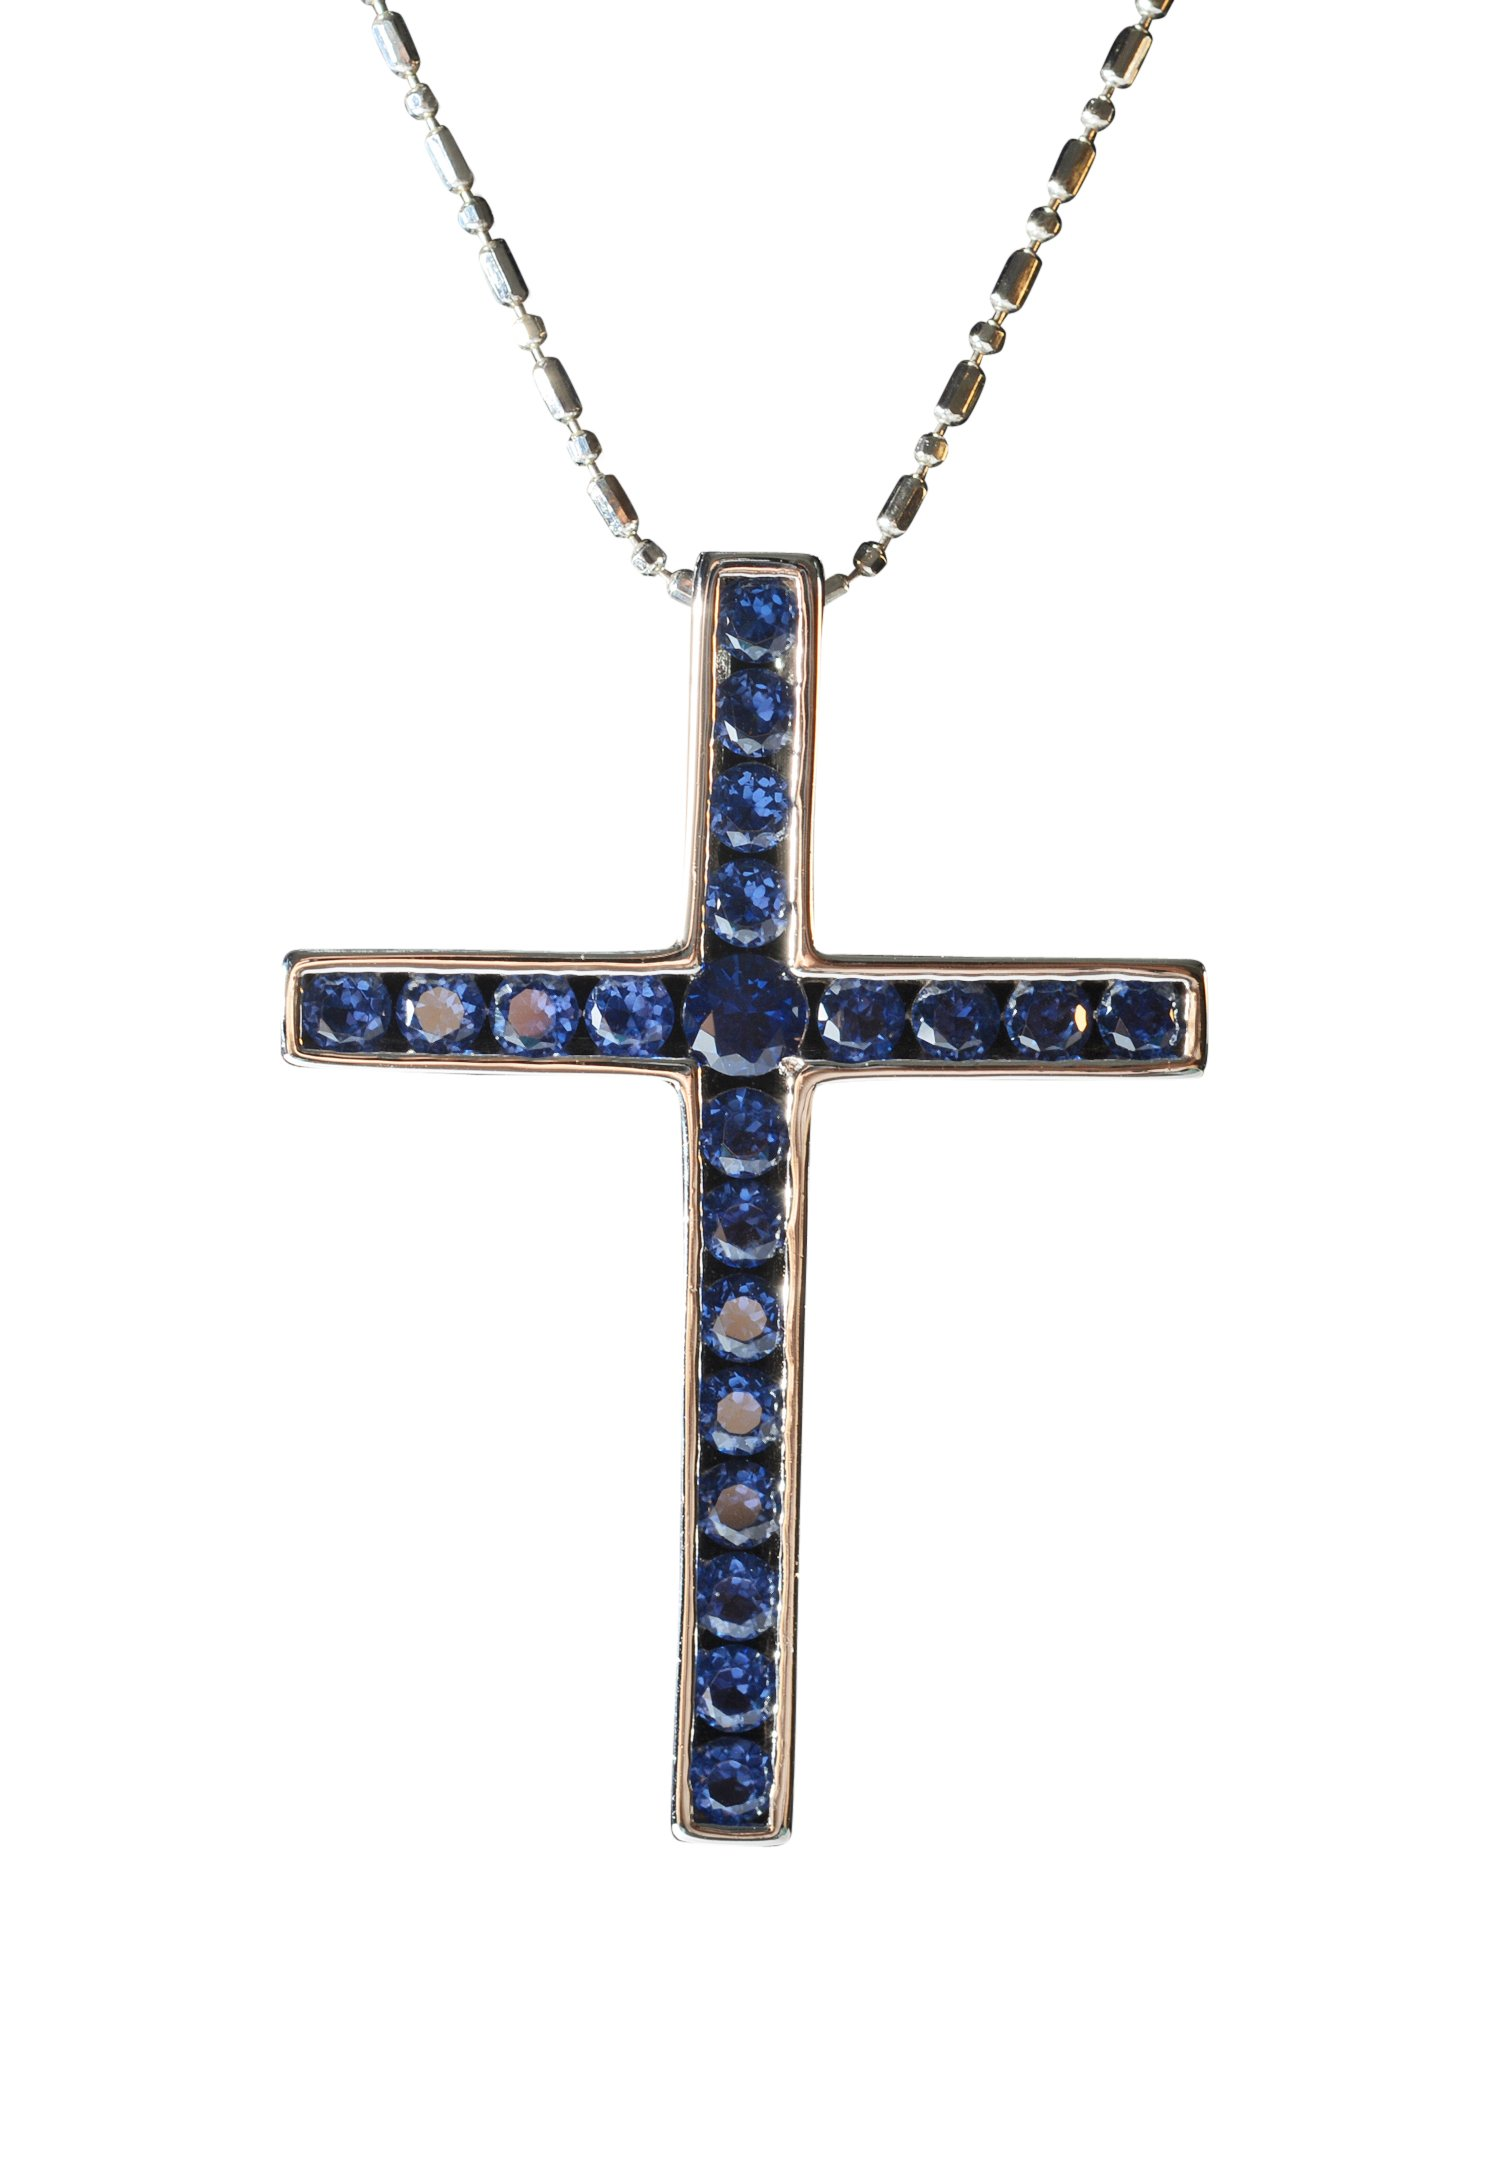 Tingle Cross Pendant Necklace Sterling Silver Cross Pendant Necklace for Men Silver Cross Sapphire CZ Cross Pendant Necklace Silver Cross Pendant for Women (Saphire Zircon)